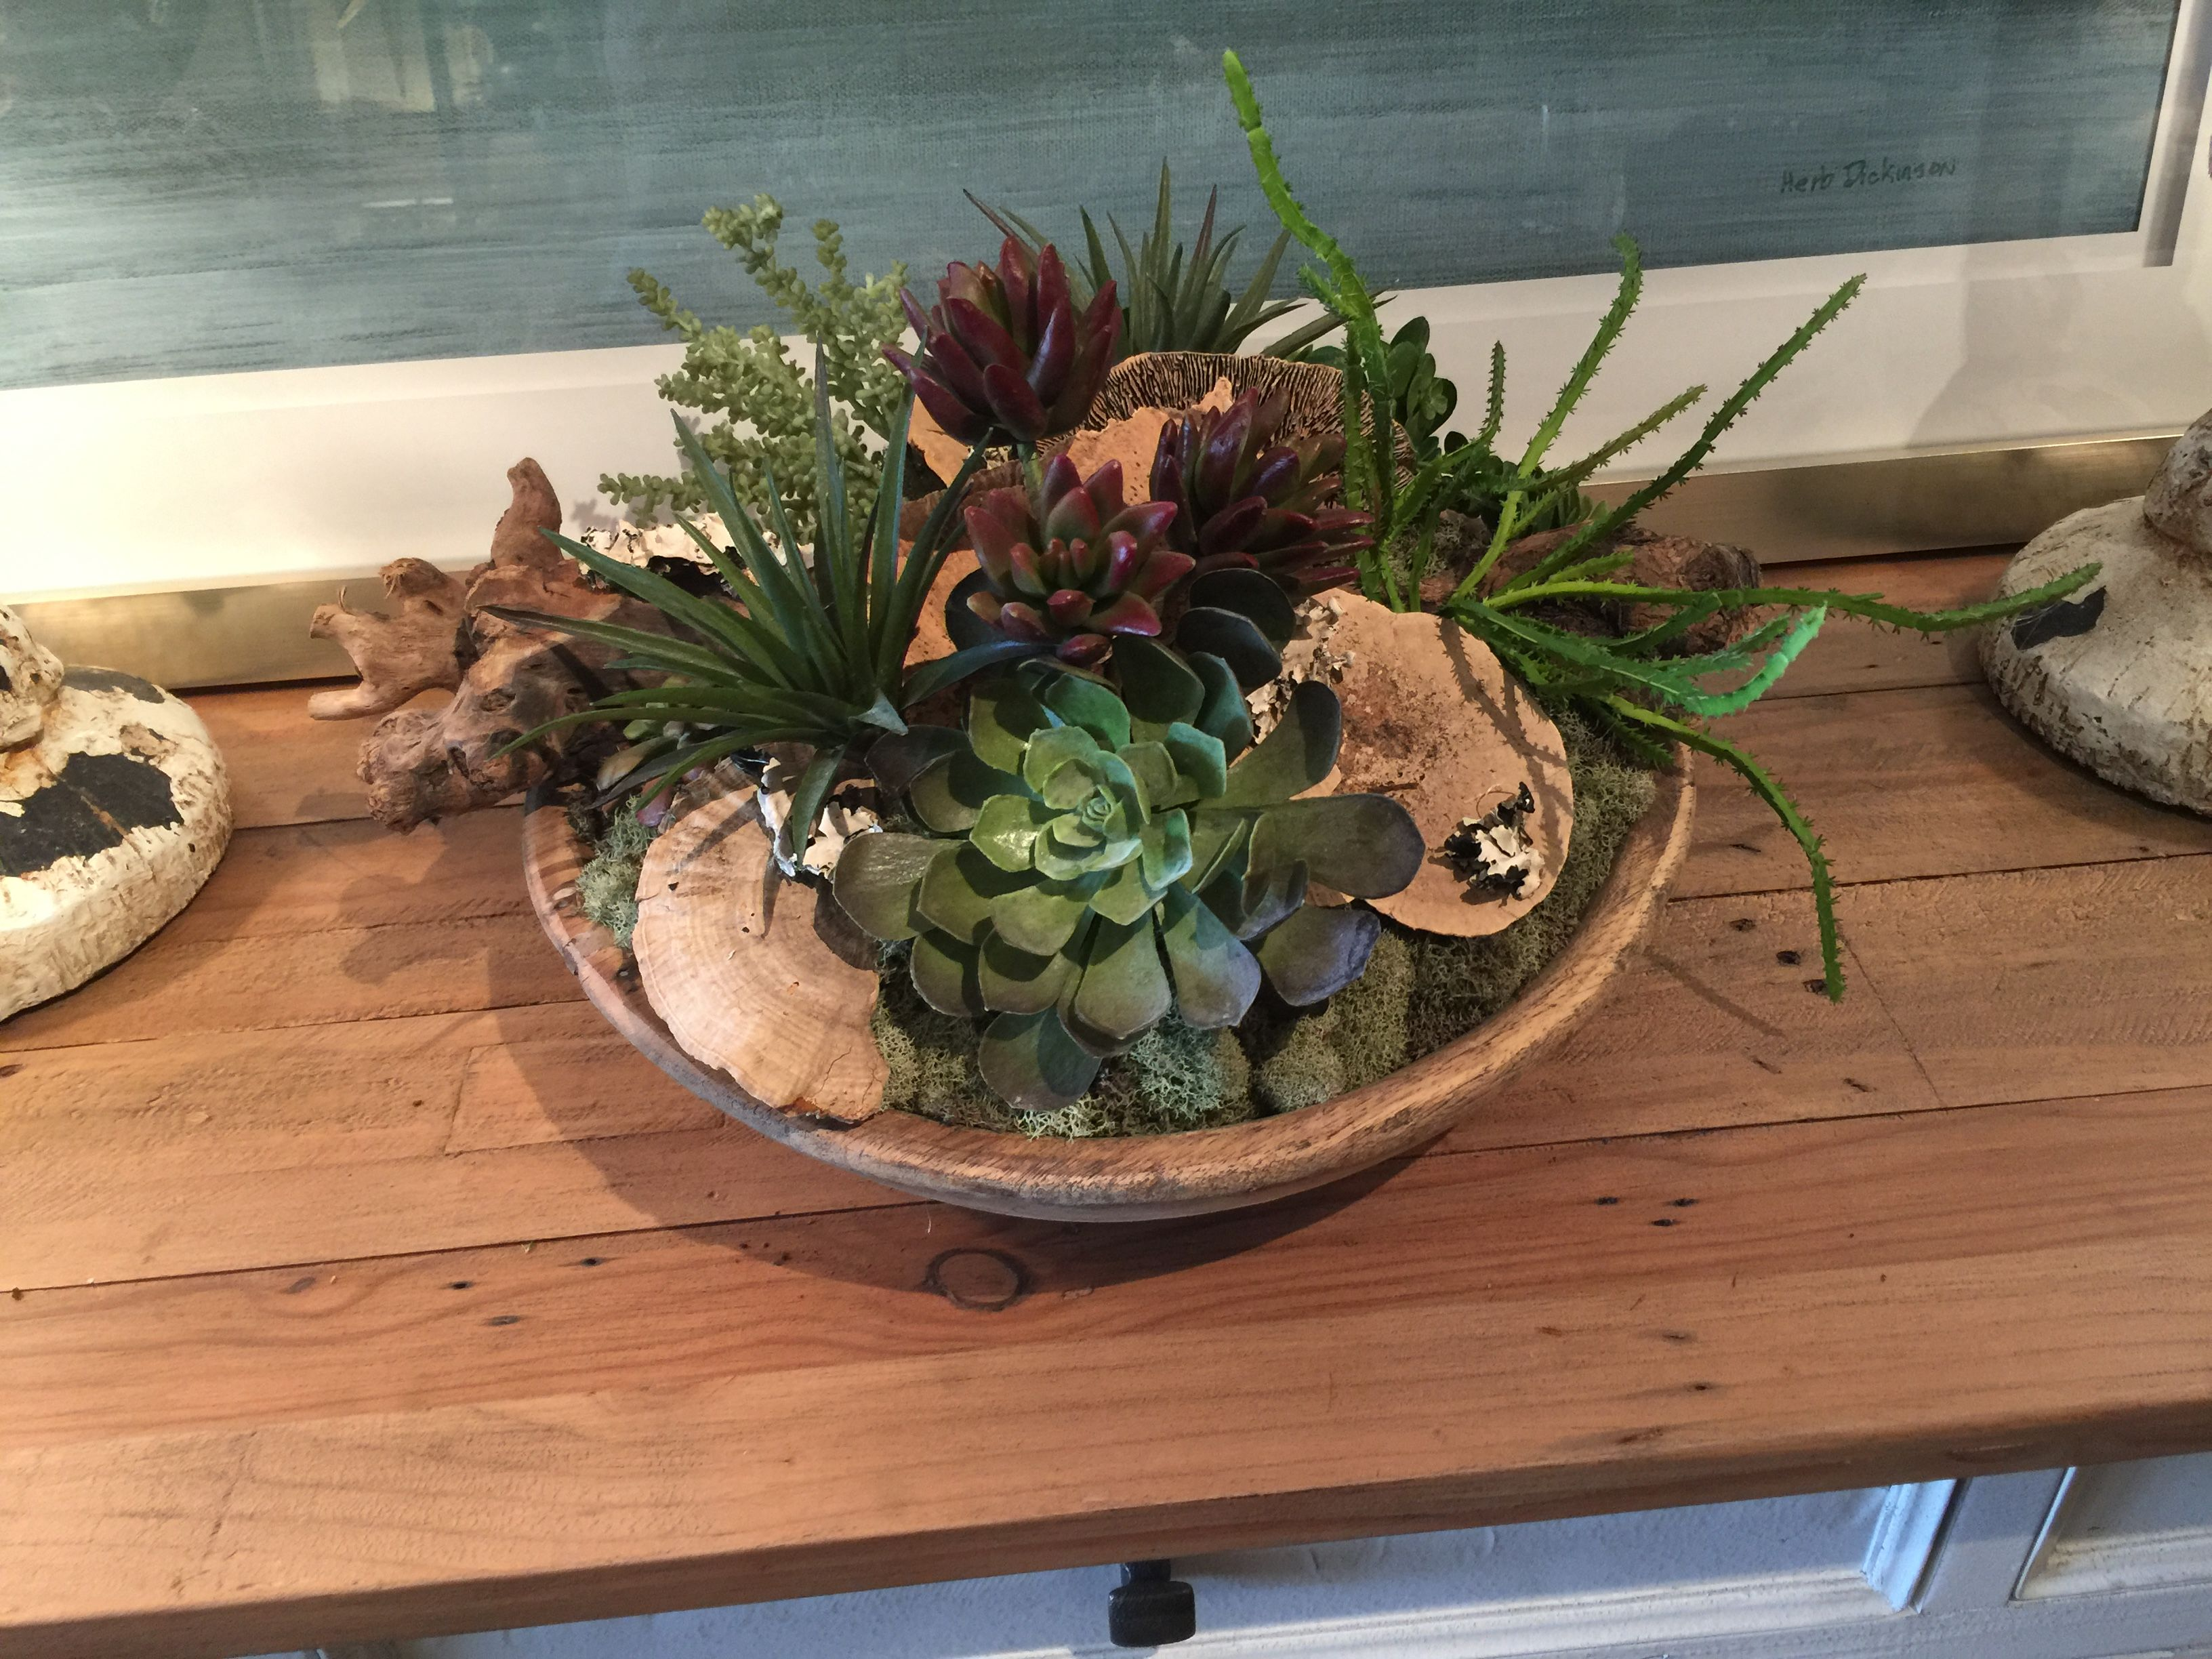 Pin by Anne Krekelberg on Succulents Succulents, Floral